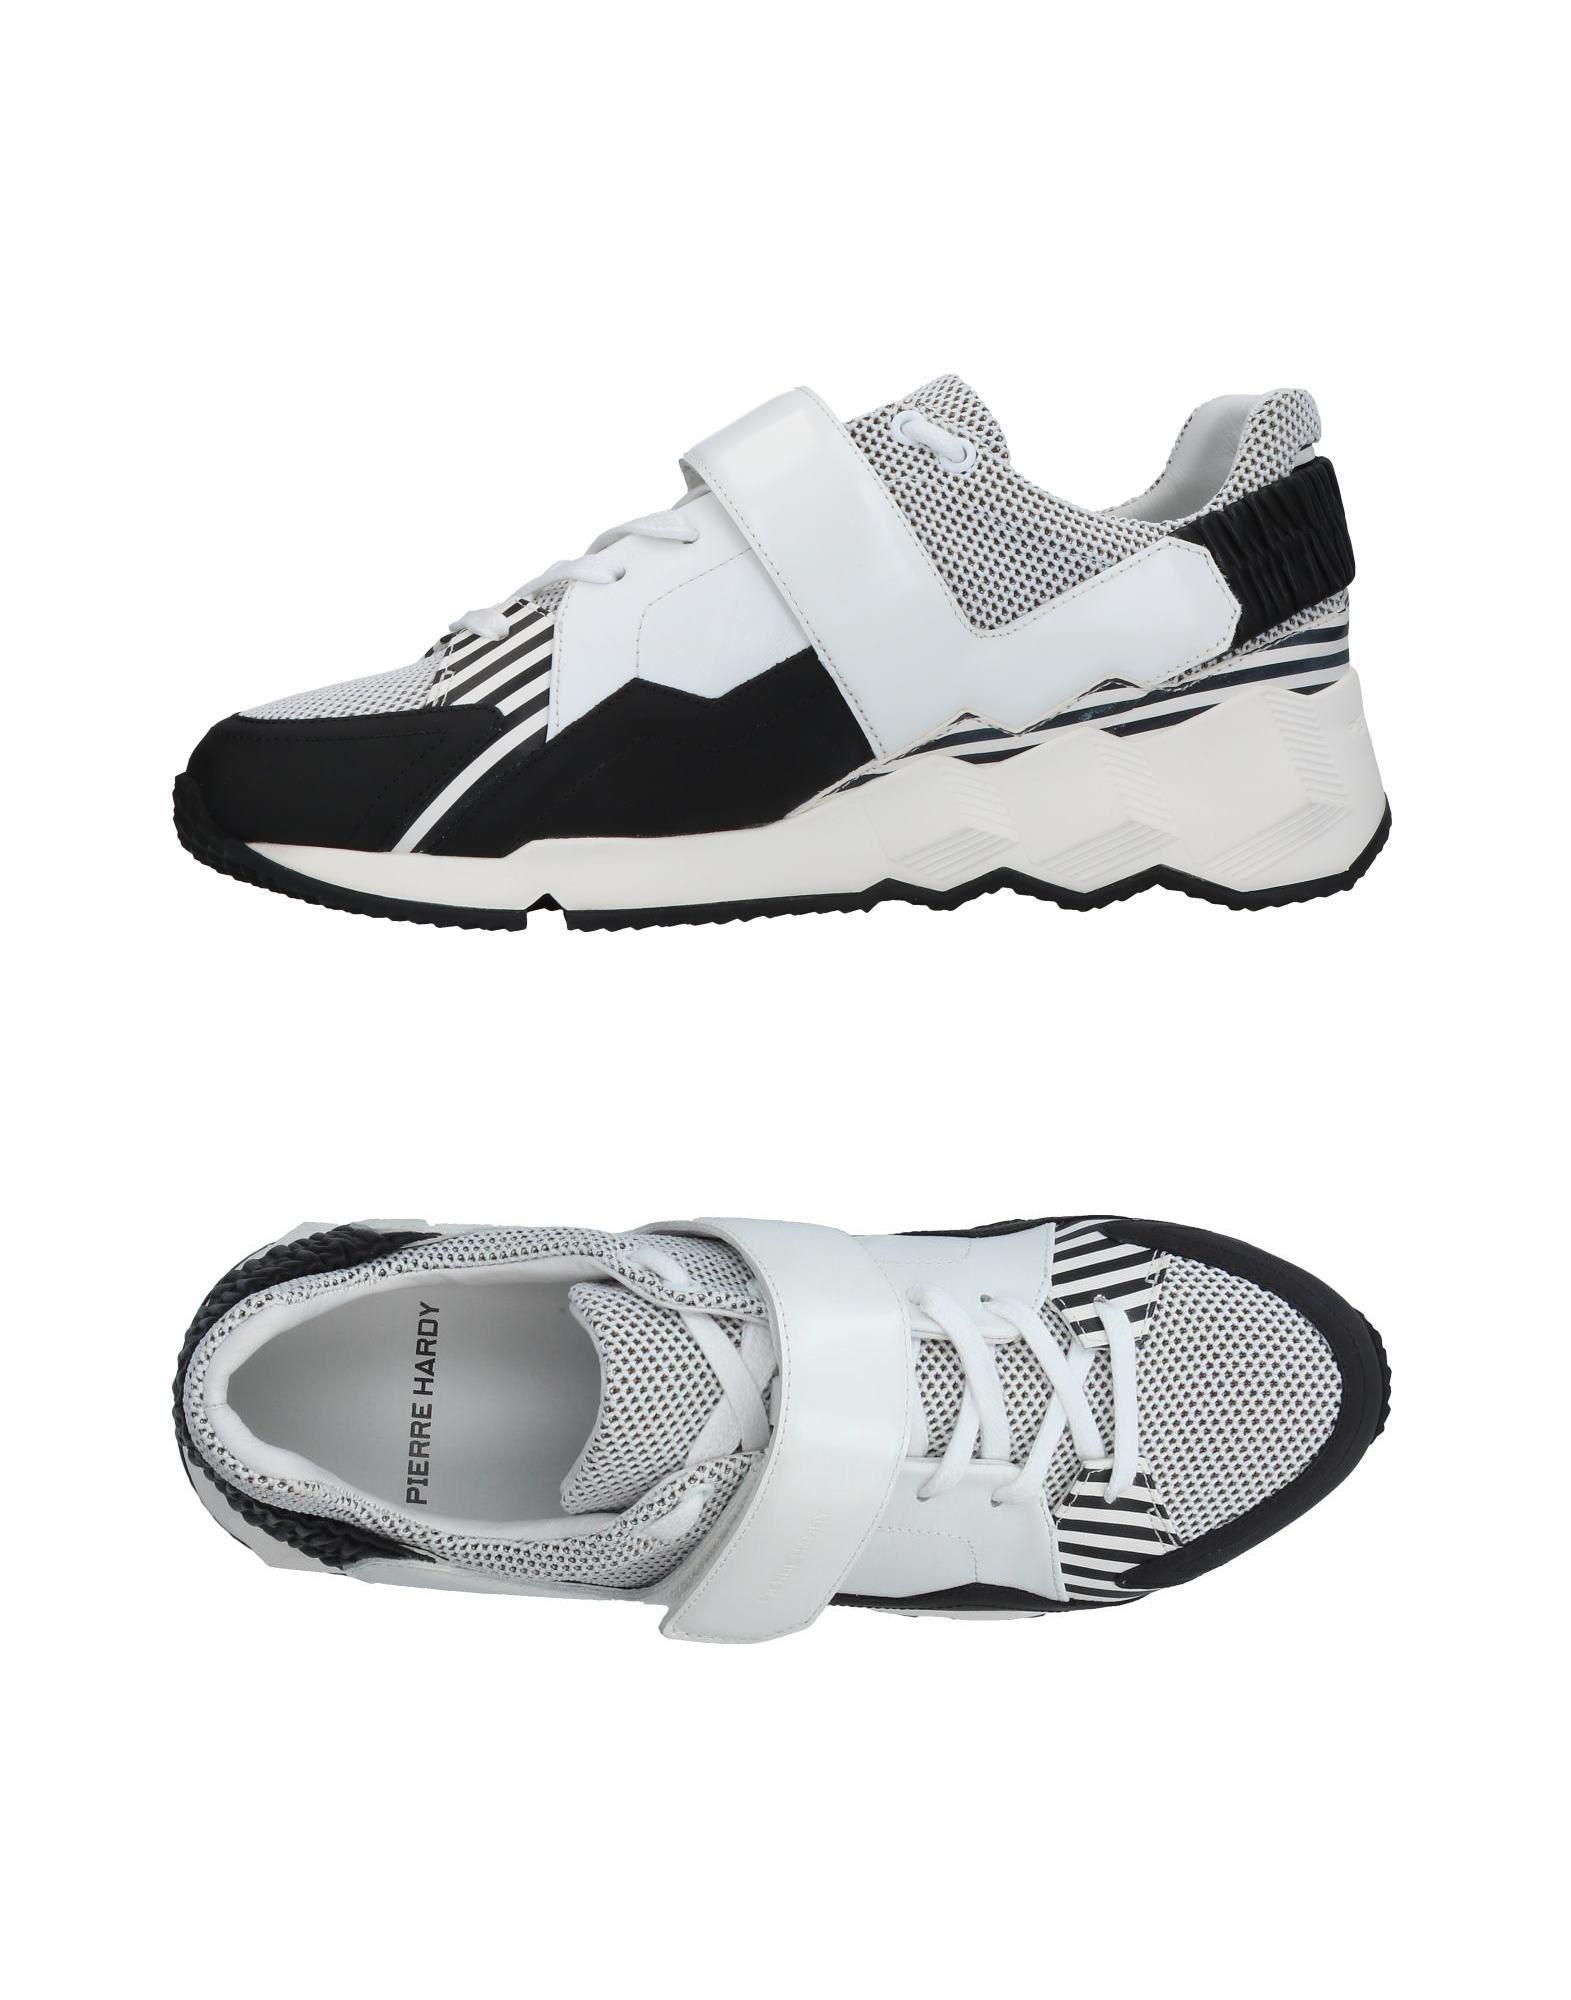 FOOTWEAR - Low-tops & sneakers Pierre Hardy Websites Cheap Online Outlet 2018 New Eastbay Cheap Price Nicekicks Fashionable Online EBEb7aIAm